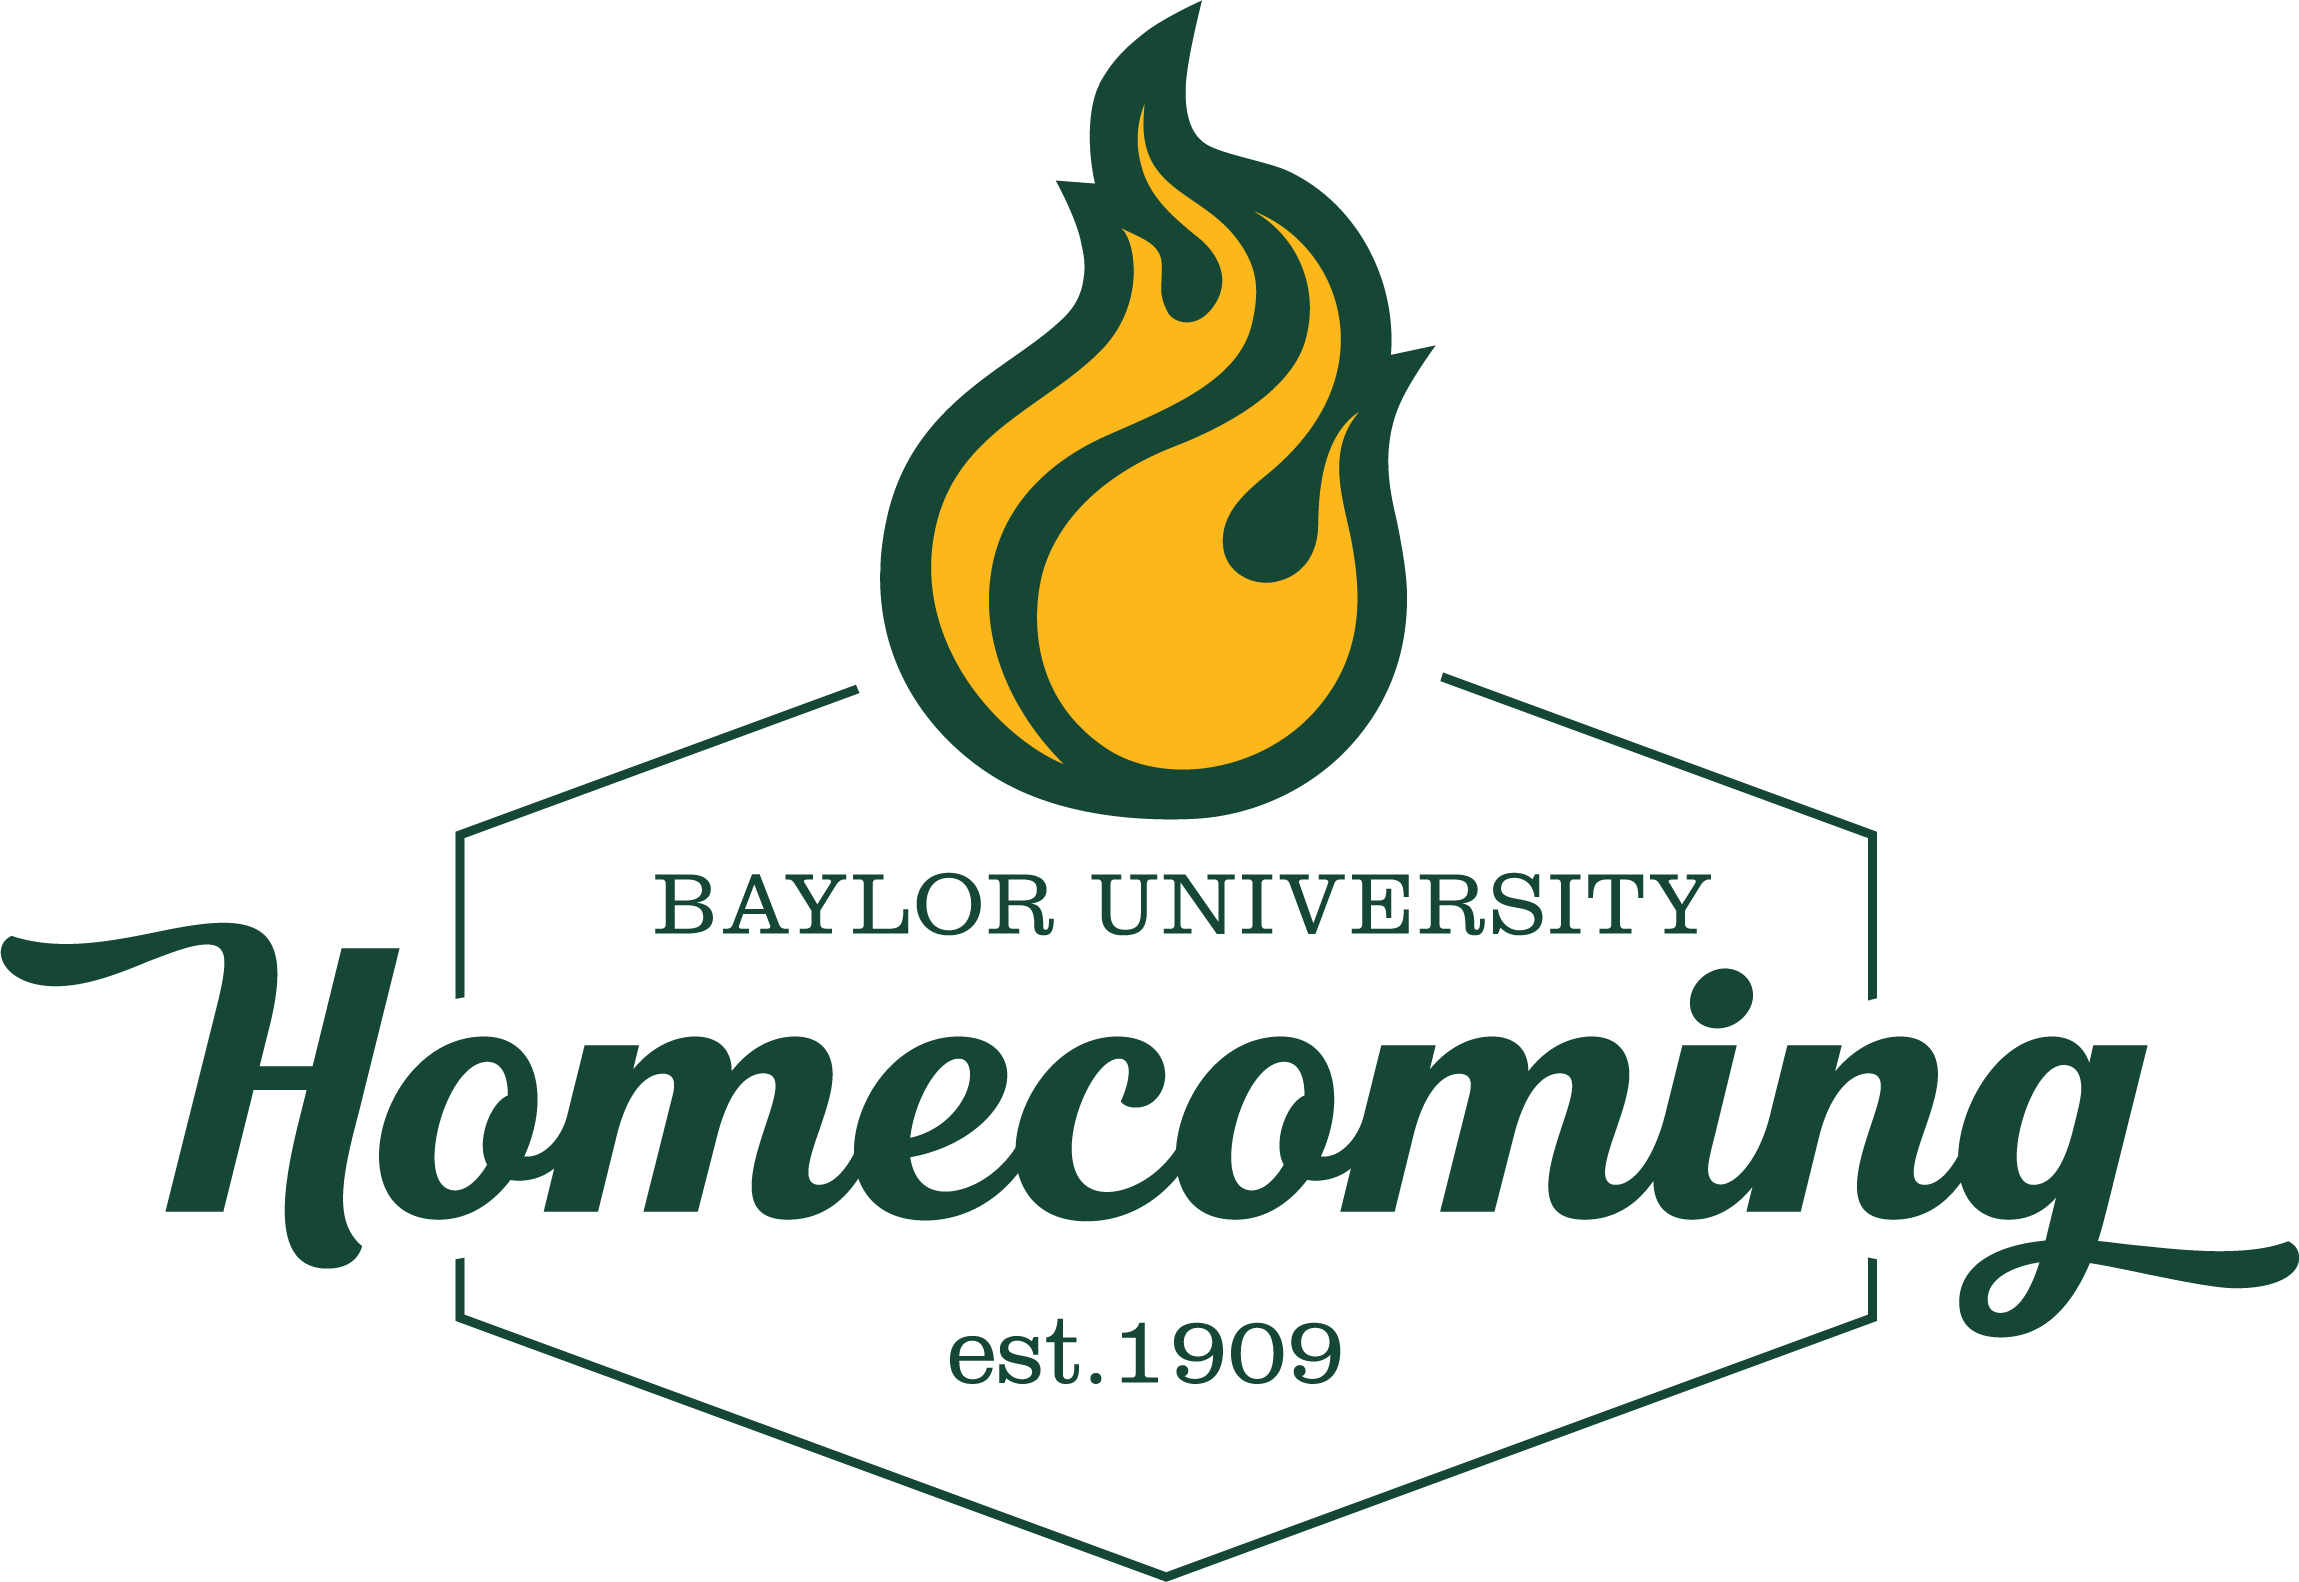 Baylor Graduation 2020.Baylor University Announces 2020 Family Weekend Homecoming